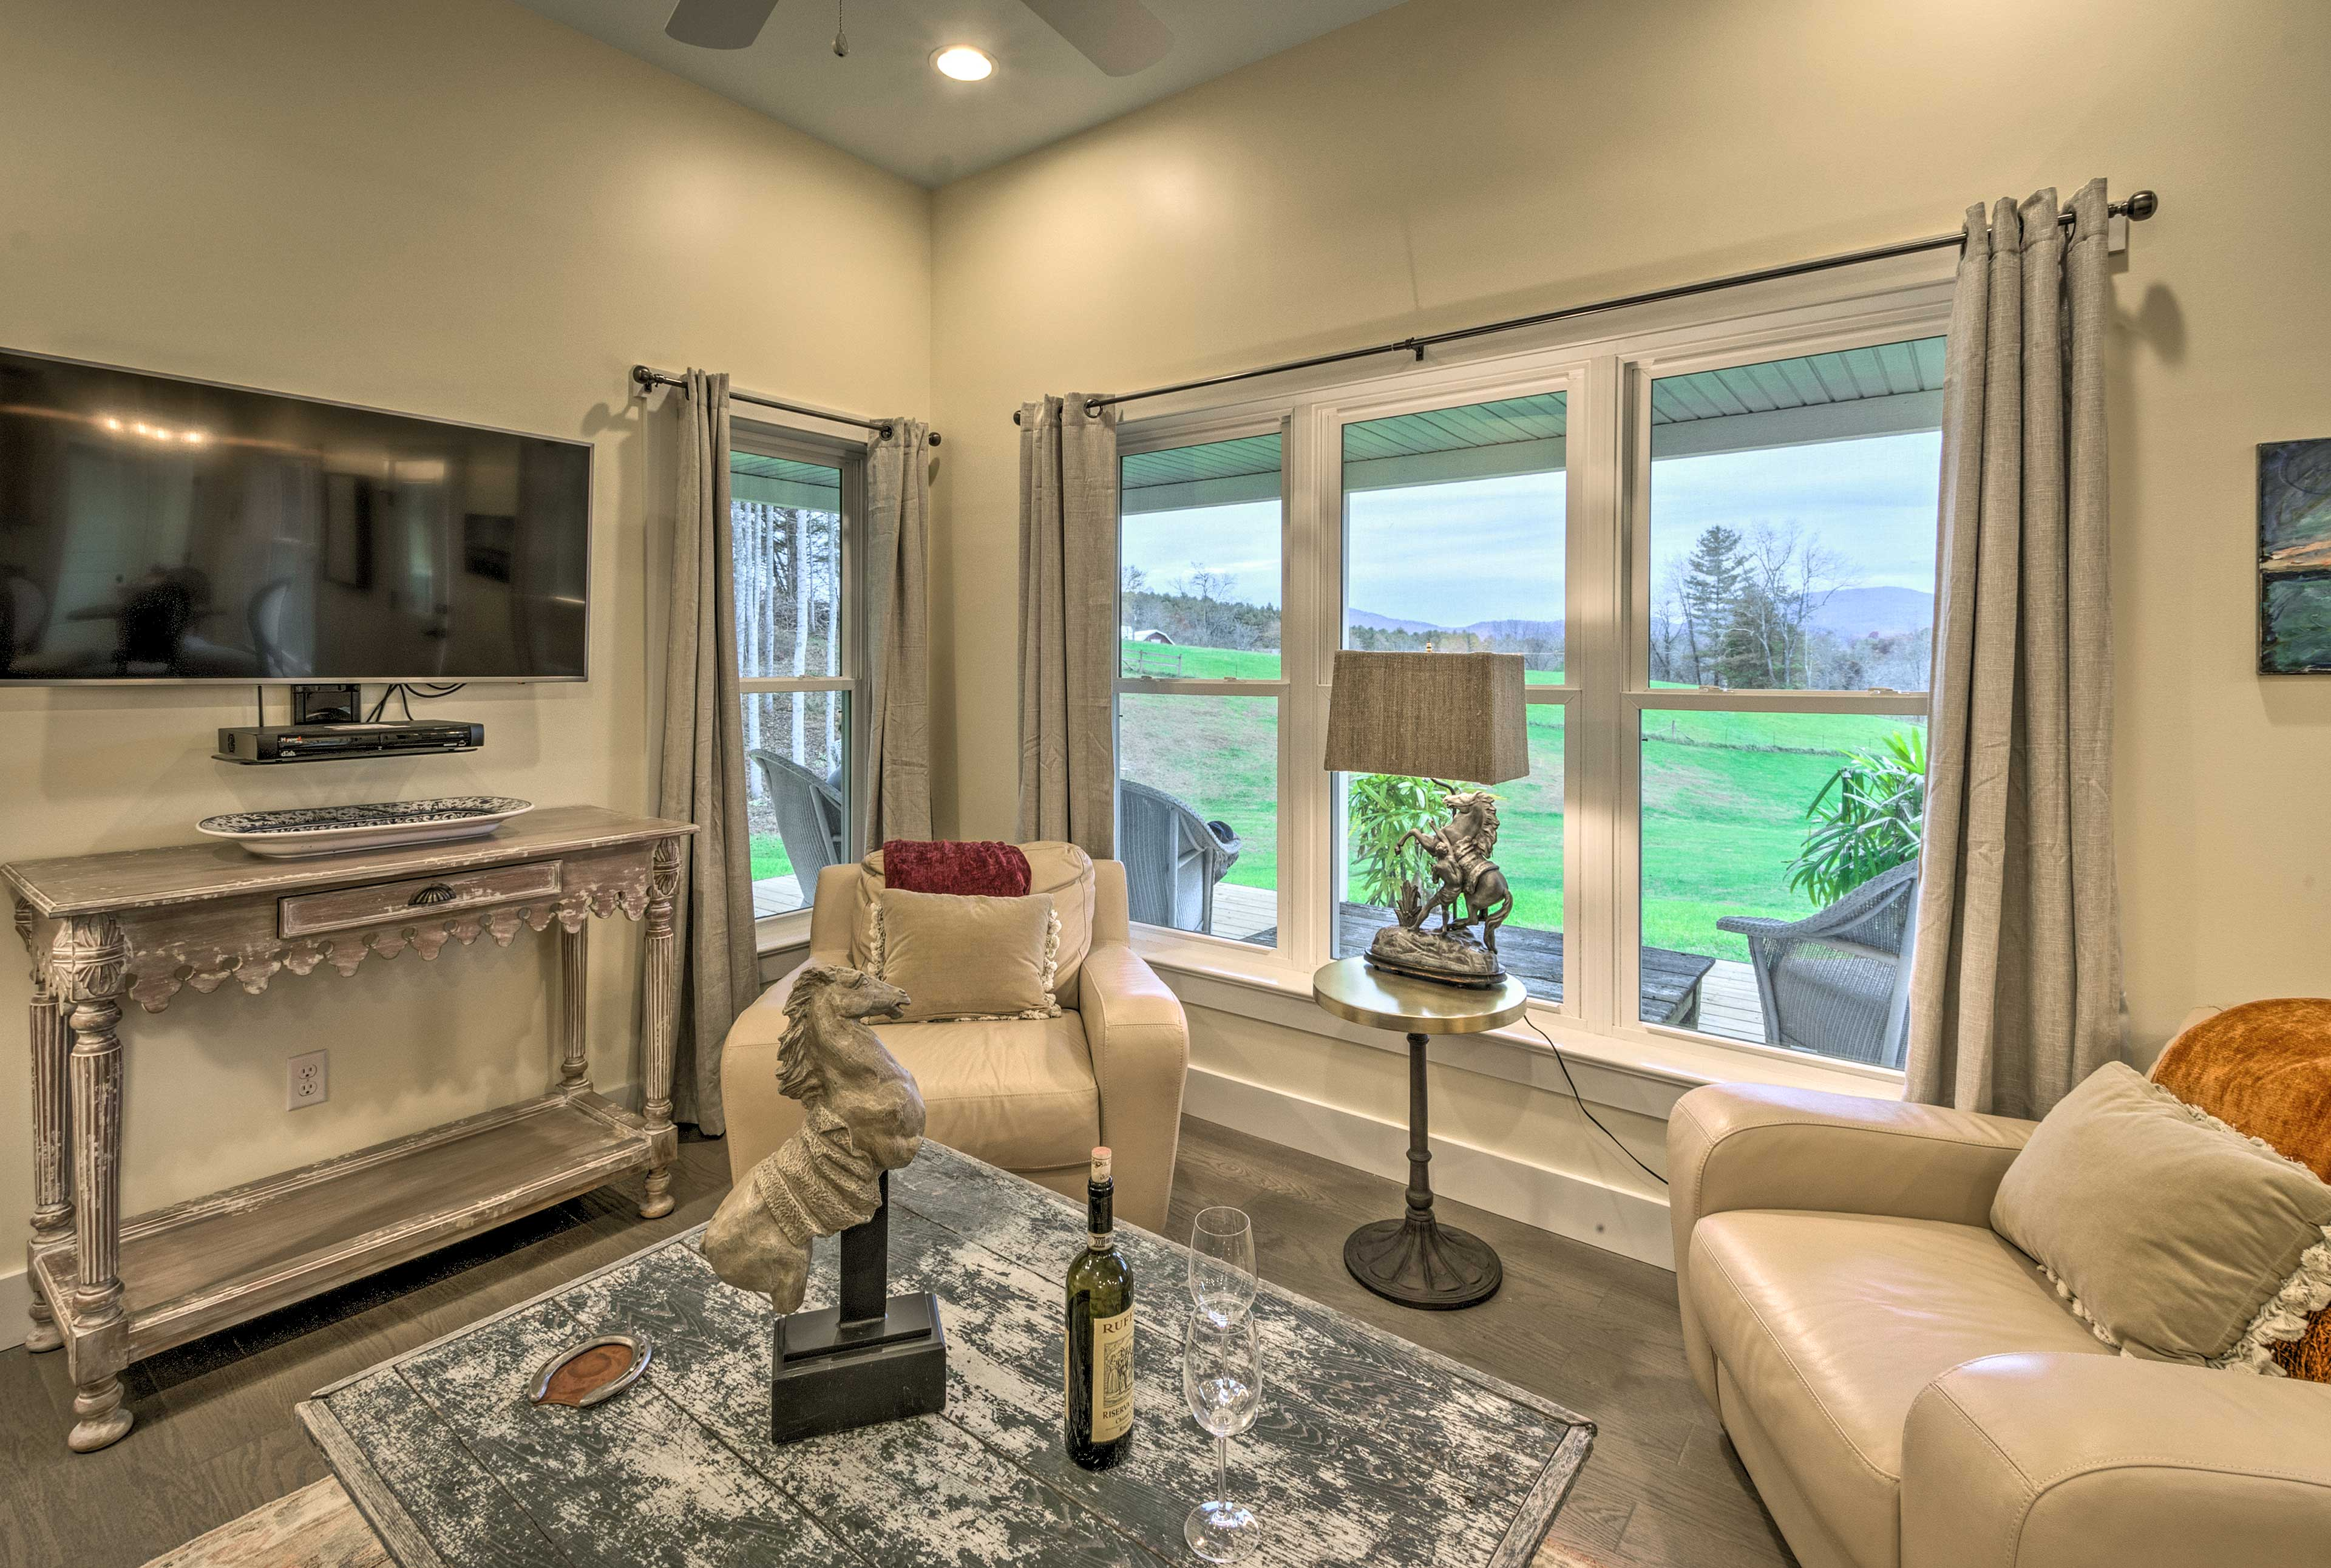 Admire views of vibrant greenery from the living room.